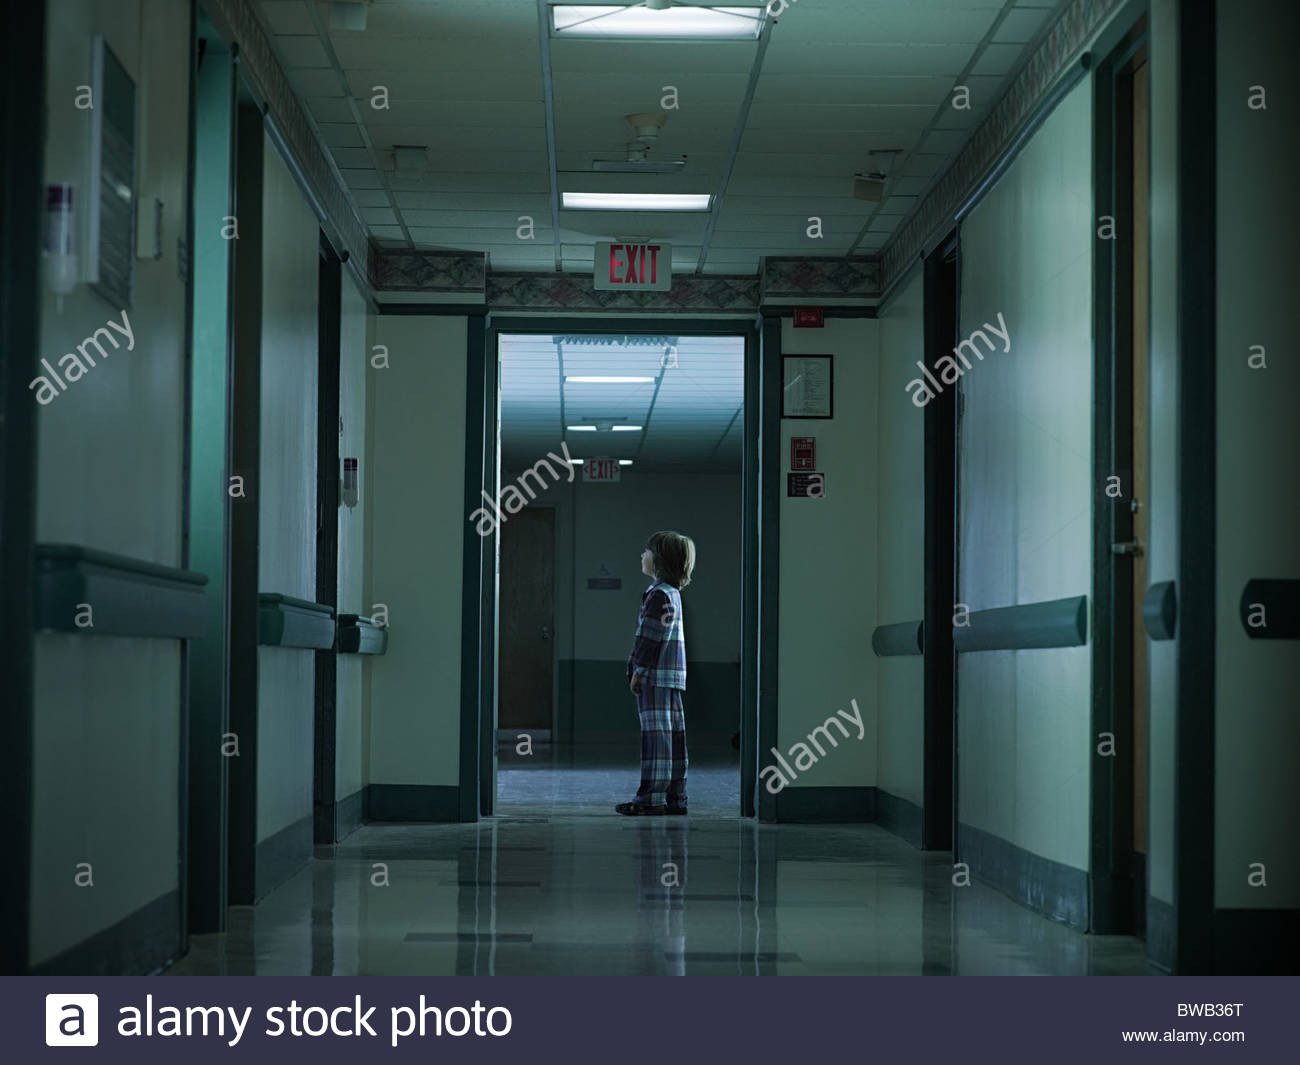 Young boy standing alone in hospital corridor - Stock Image